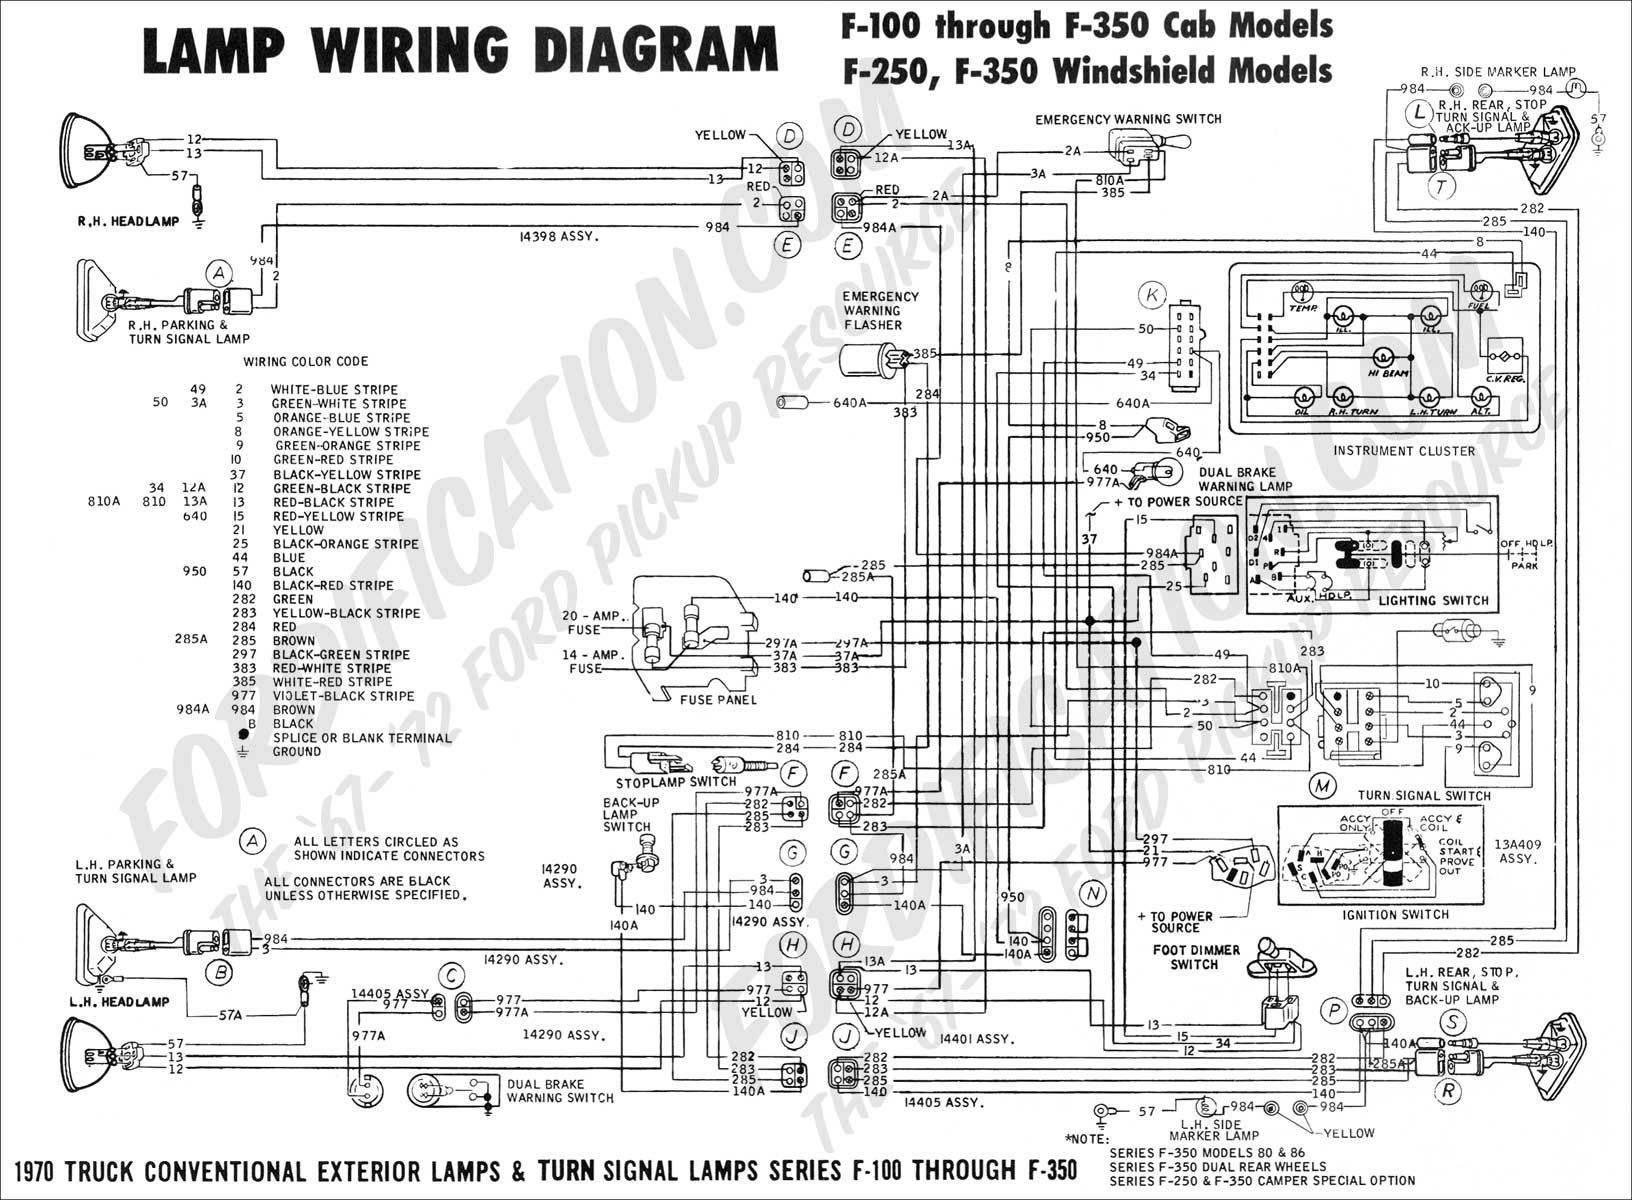 1977 Ford F 250 Turn Signal Wiring Diagram voltage regulator ... Jeep Turn Signal Wiring Diagram on ford 8n wiring diagram, 1960 willys l6-226 12 volt wiring diagram, 1979 jeep wiring diagram, jeep cj5 wiring-diagram, 1986 jeep wiring diagram, simple chopper wiring diagram, 86 cj7 distributor wiring diagram, 2014 jeep wrangler wiring diagram, 1984 jeep cj wiring diagram, 2009 dodge 4500 pto wiring diagram,